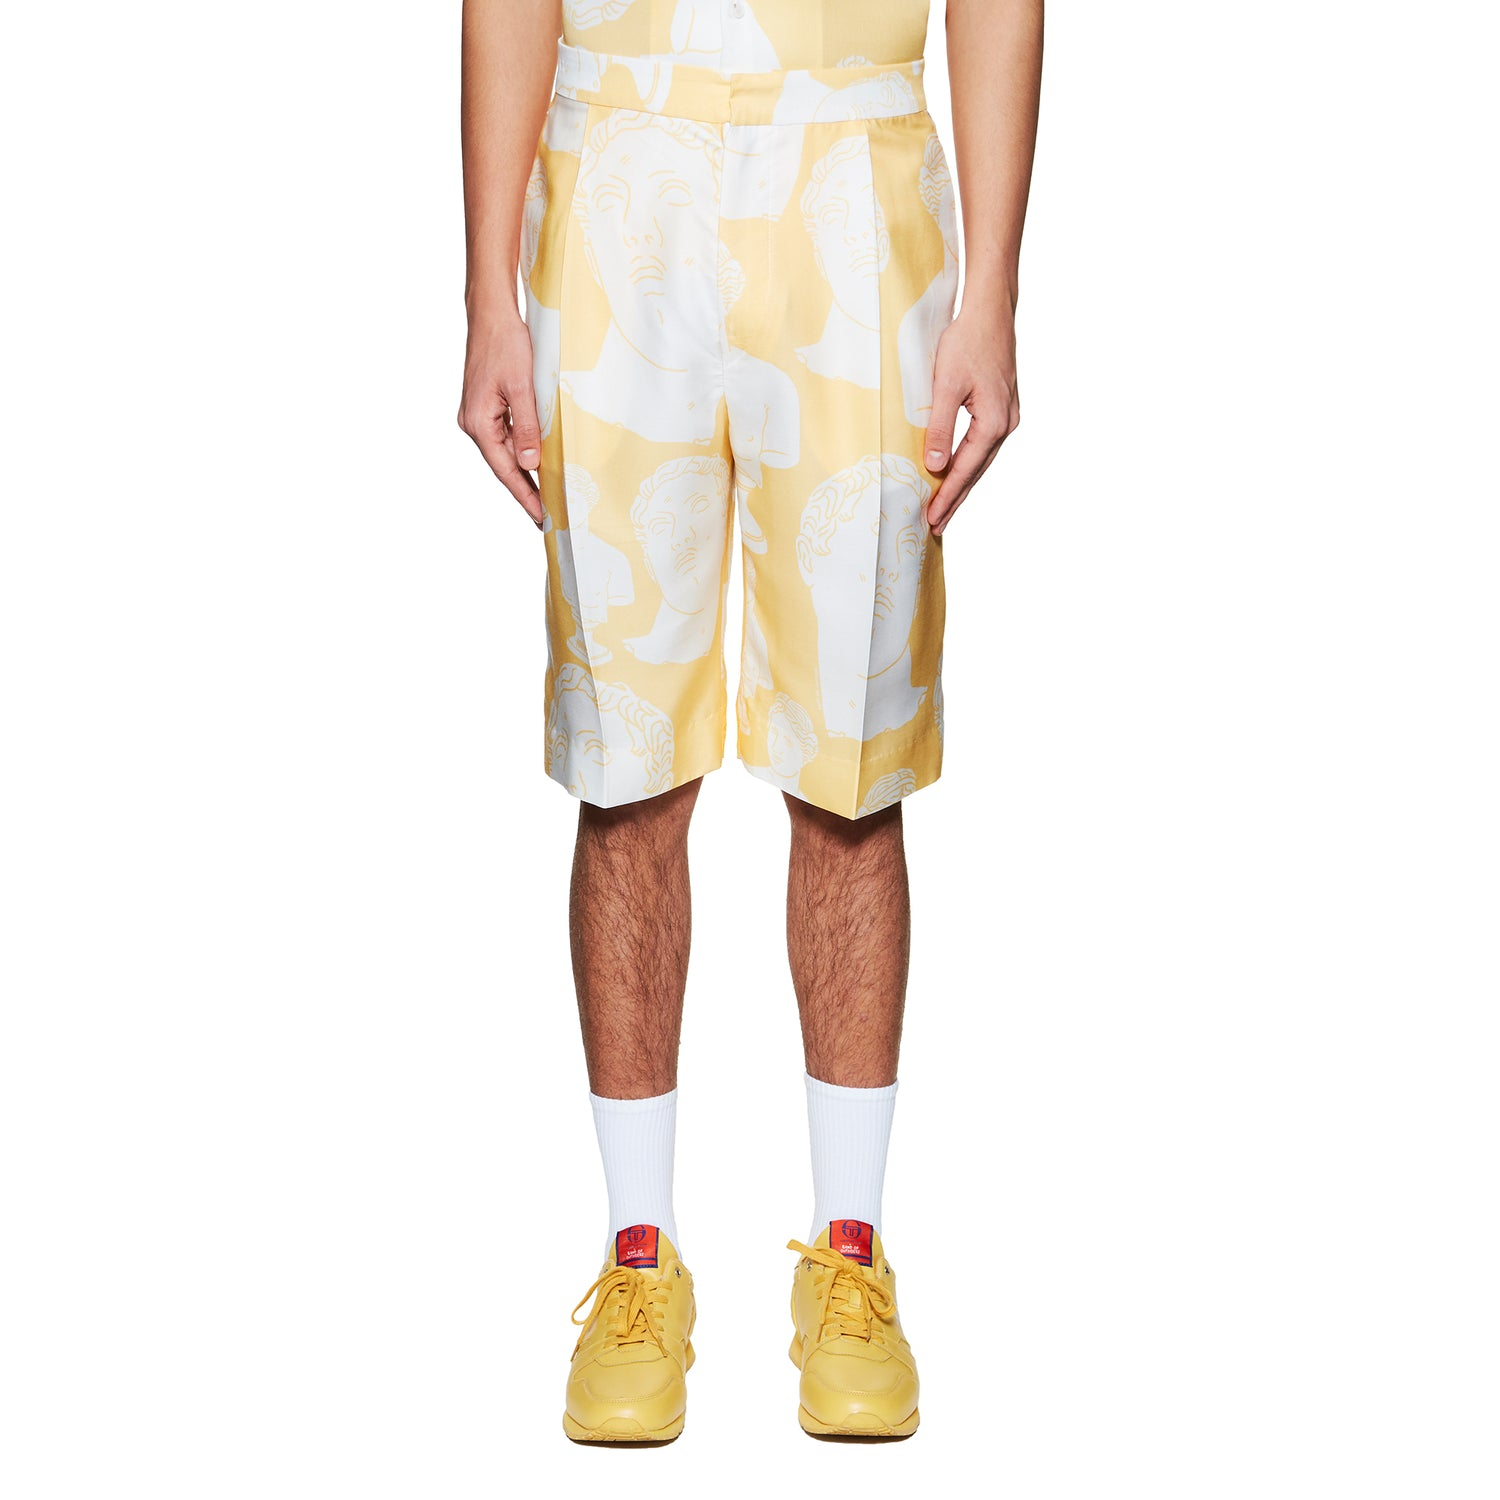 YELLOW HAWAIIAN MARBLES SHORTS